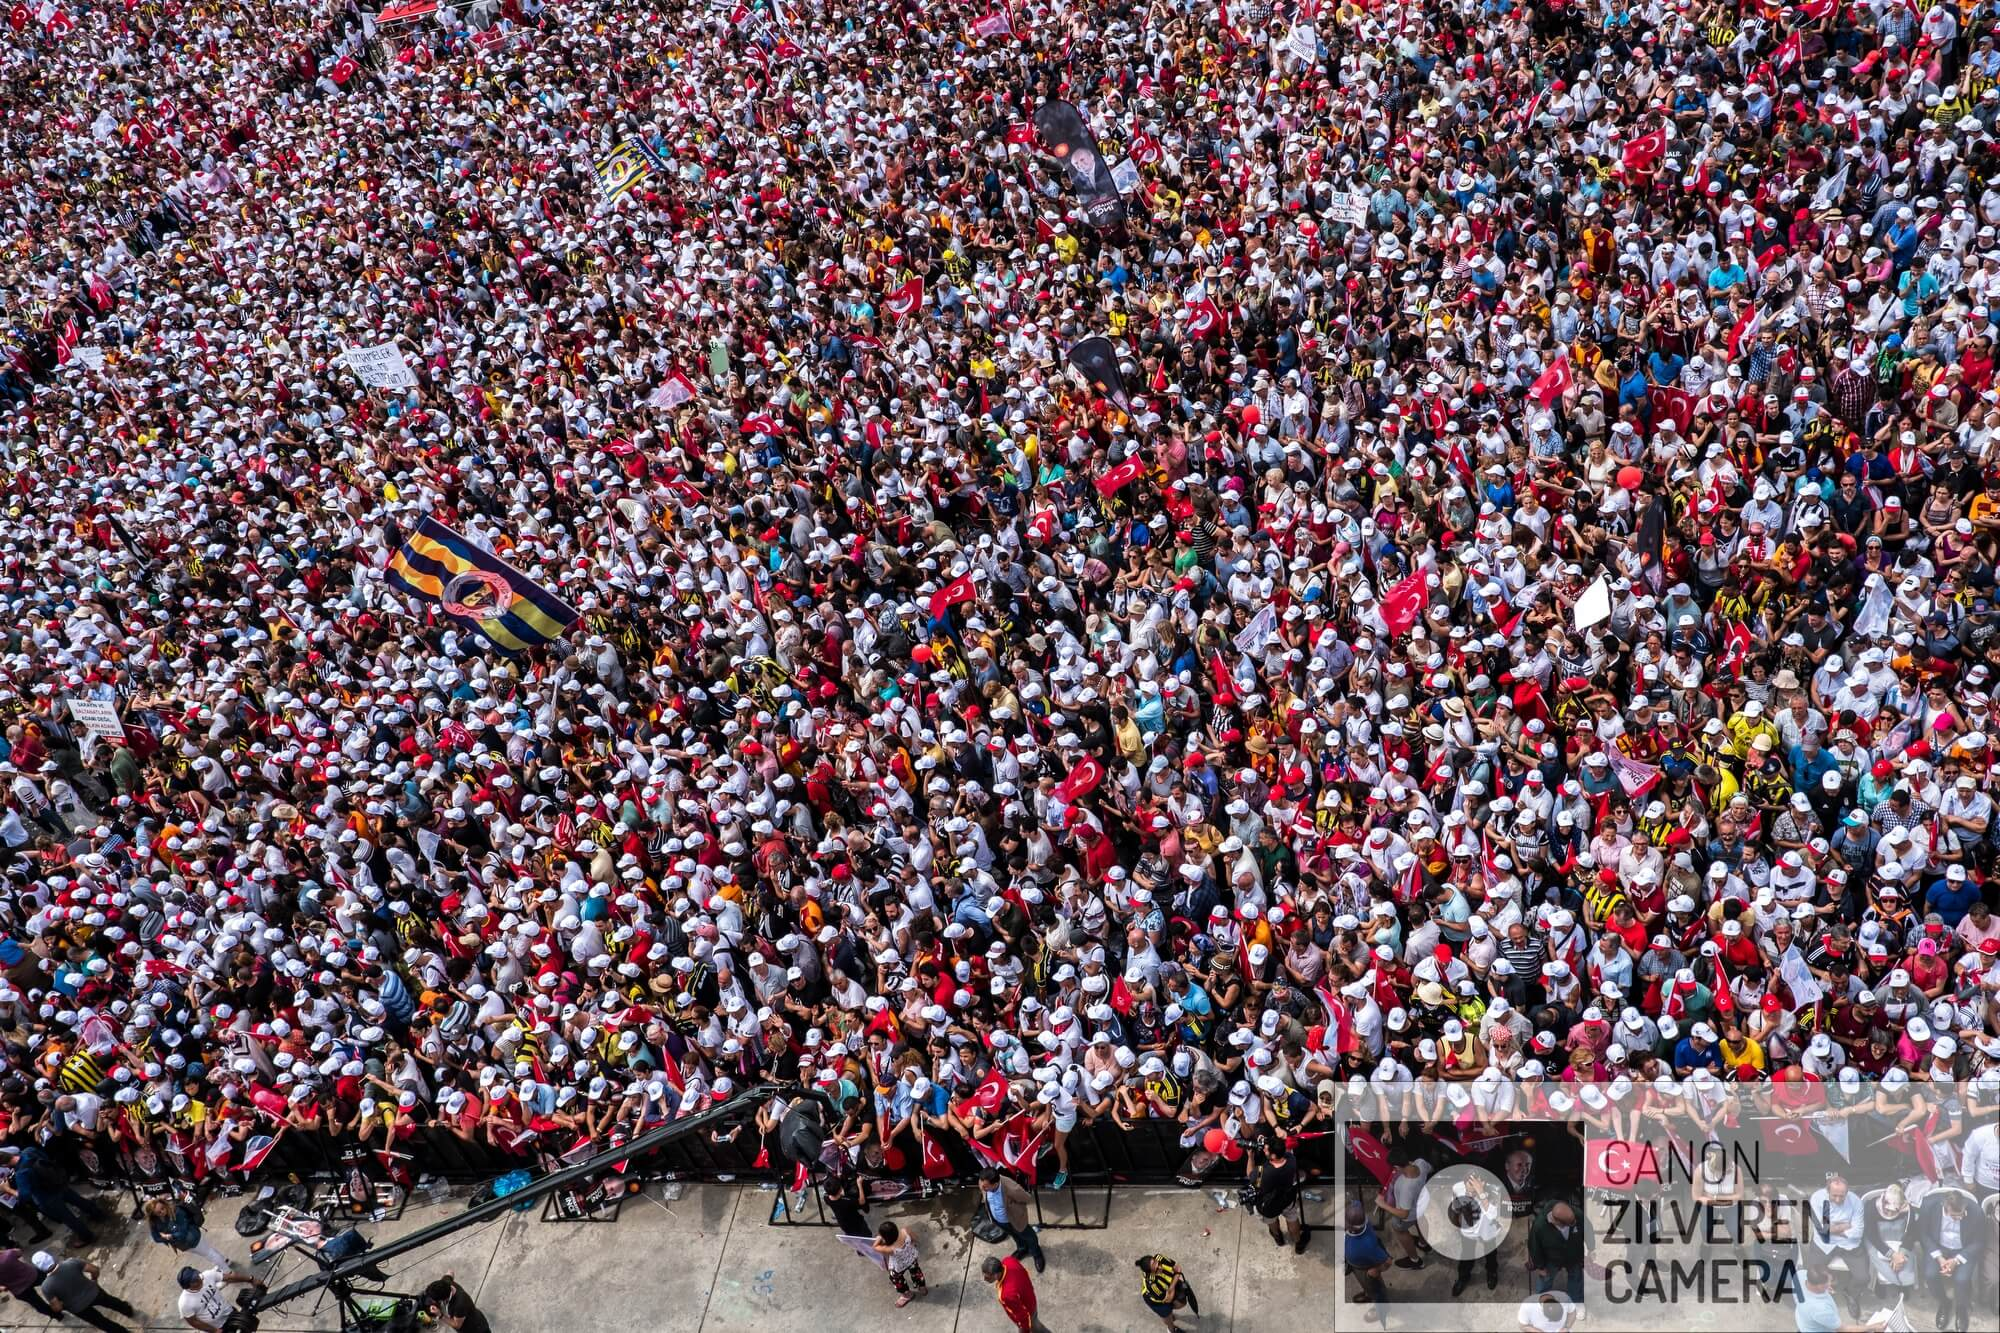 Istanbul, Turkey, June 23, 2018 | PHOTO #3  | A huge crowd of CHP supporters is seen during the last rally of CHP's Muharrem Ince in Istanbul.  Photo: Joris van Gennip